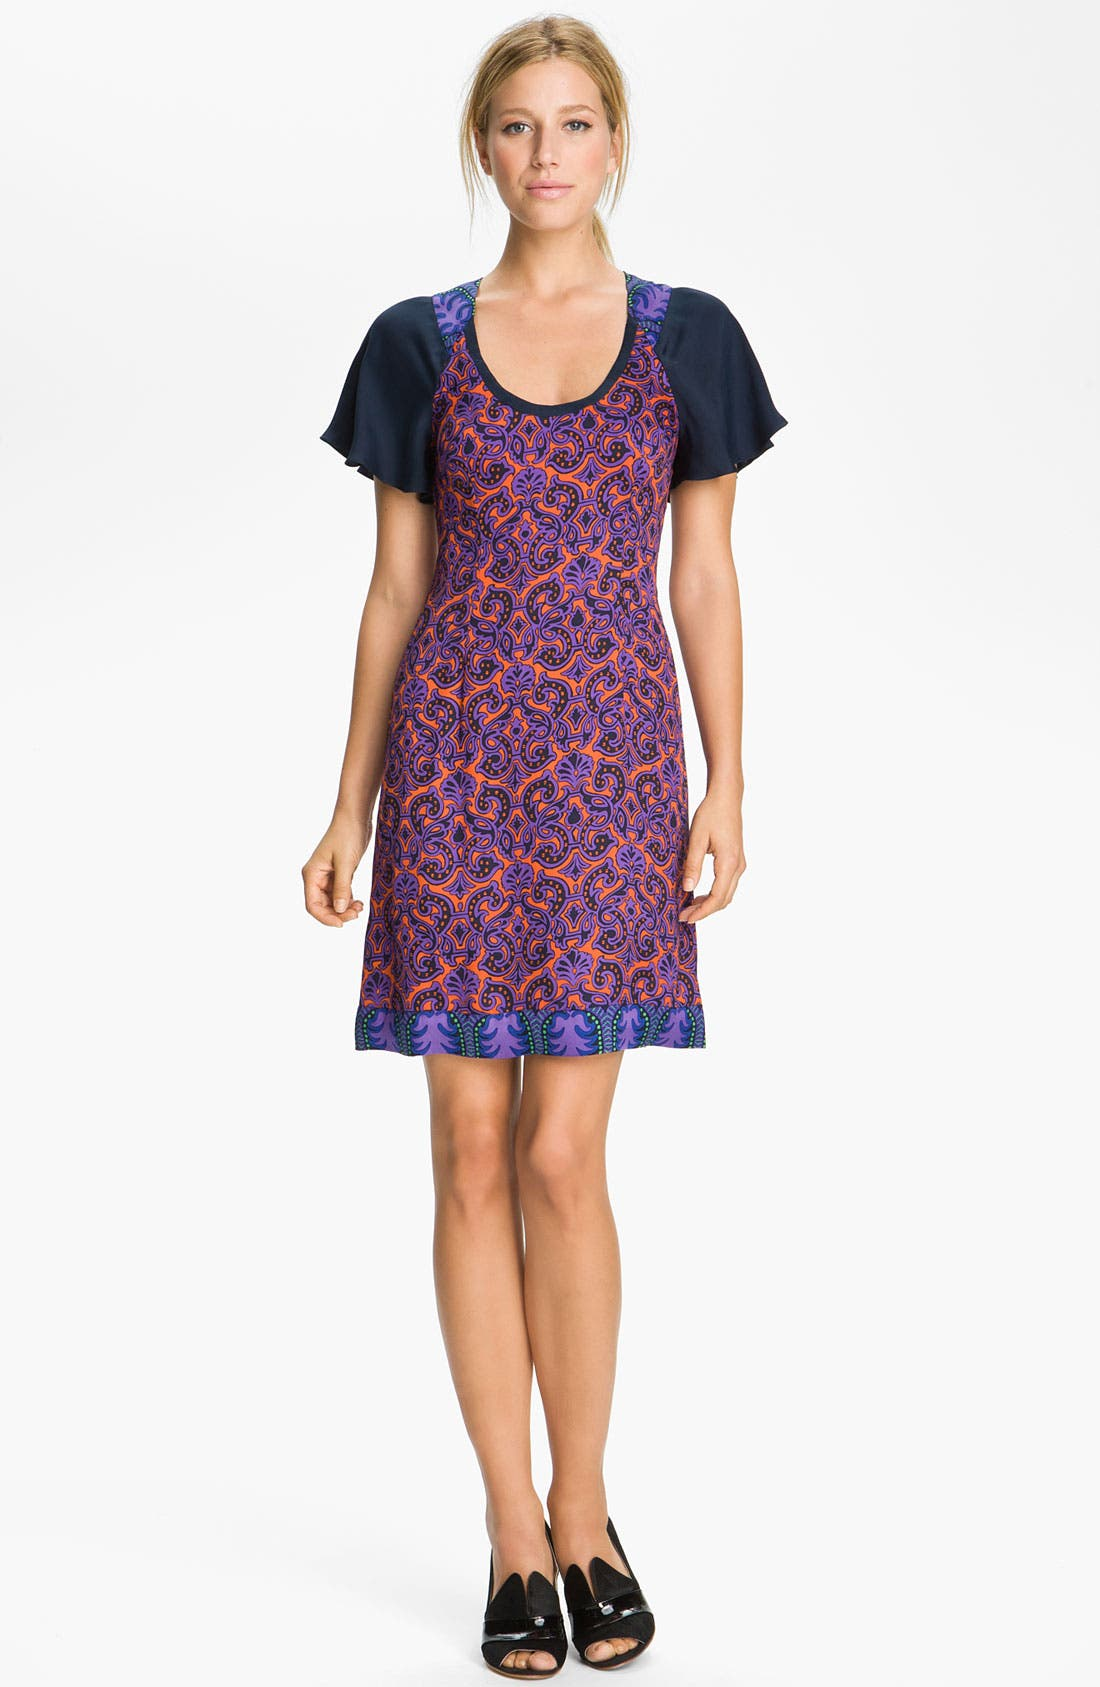 Main Image - Tracy Reese Mixed Print Foulard Dress